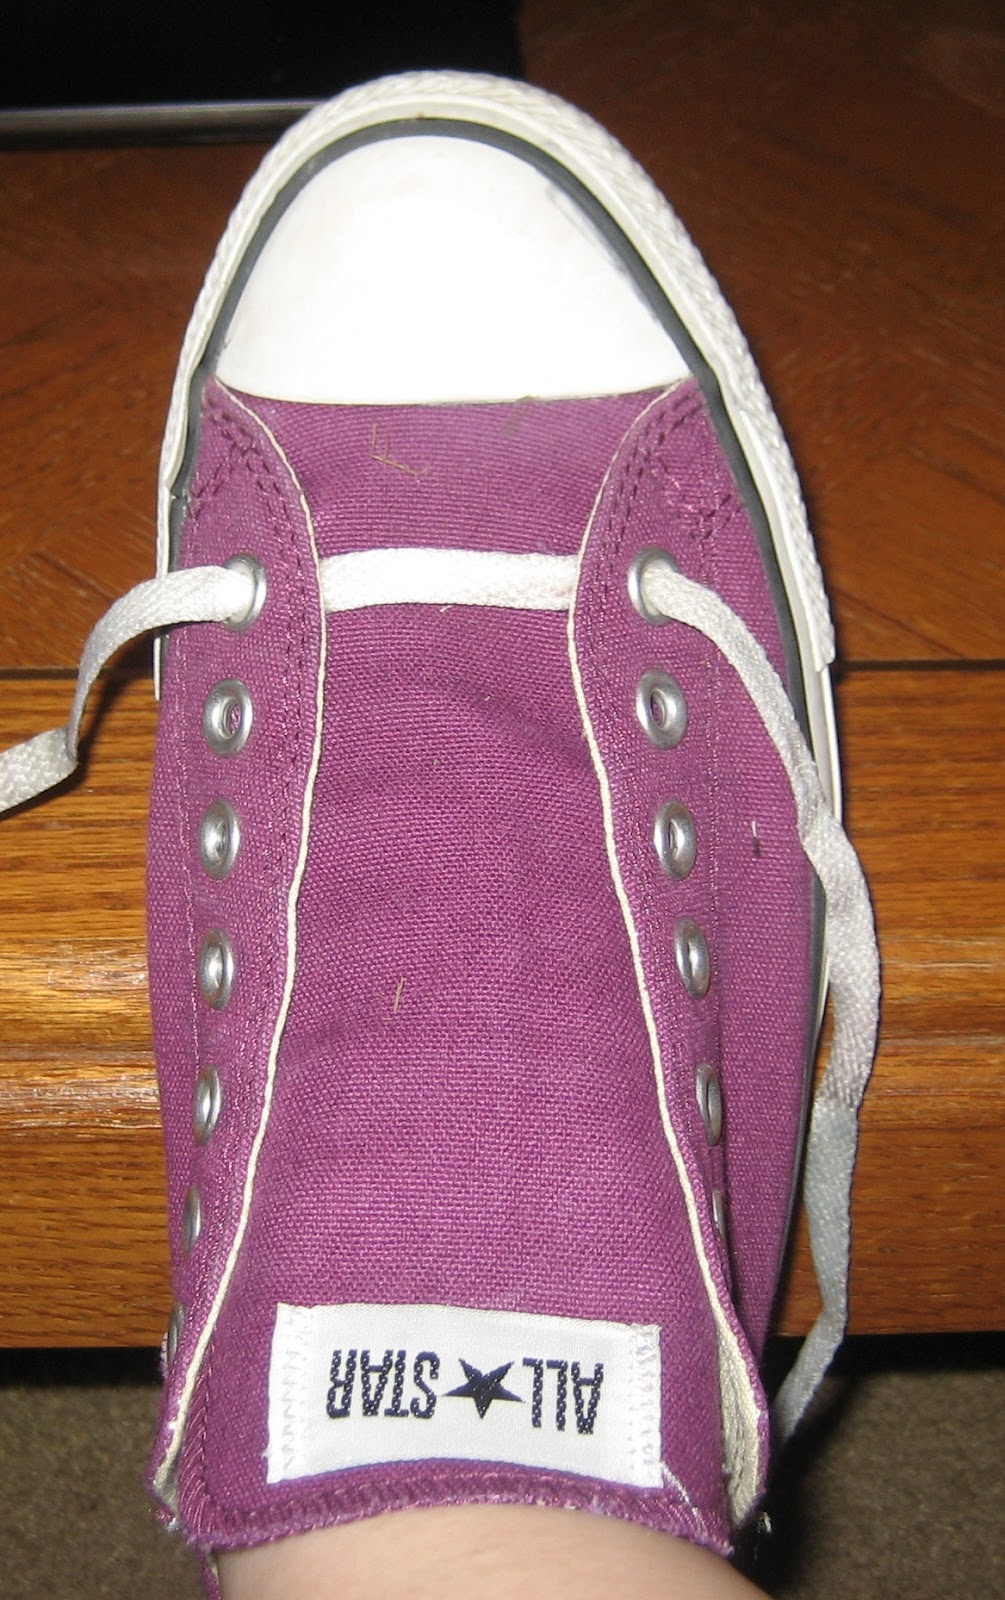 How Long Are Shoe Laces For Four Holes